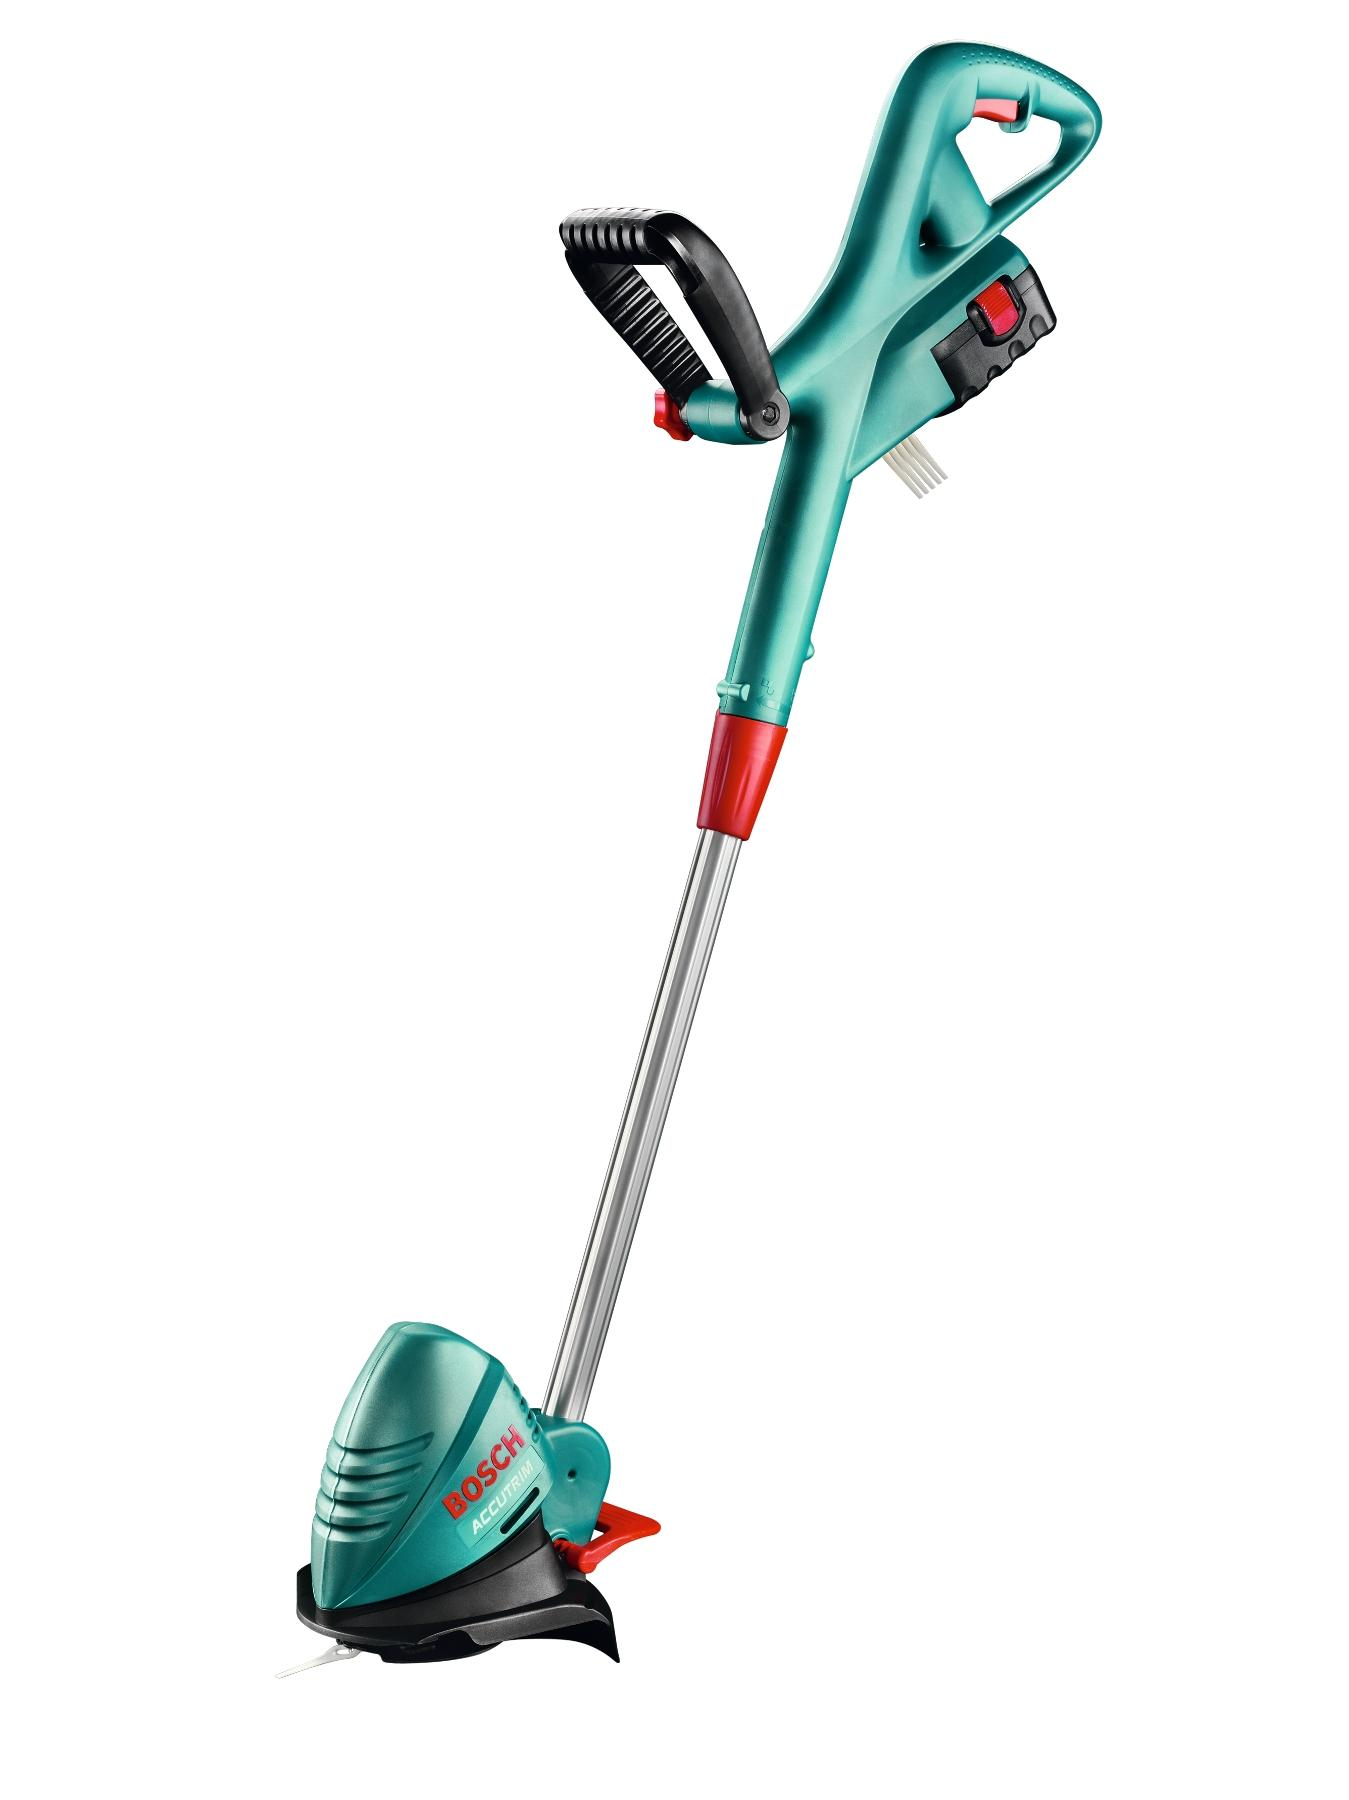 Bosch ART 23 Accutrim 18-volt Cordless Grass Trimmer